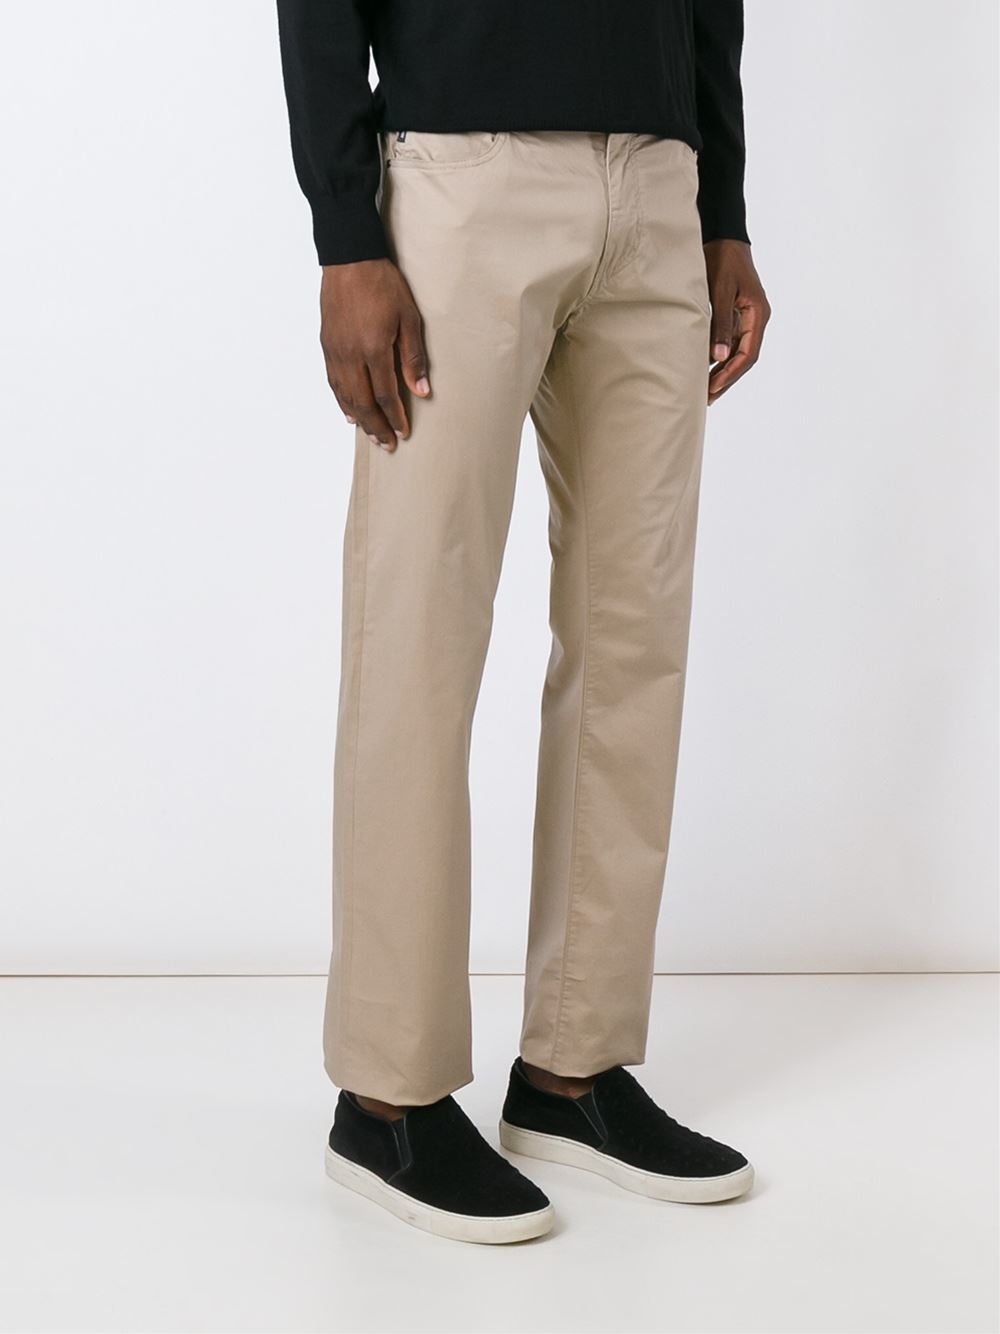 Lyst - Armani Jeans Slim Fit Chinos In Black For Men-5042